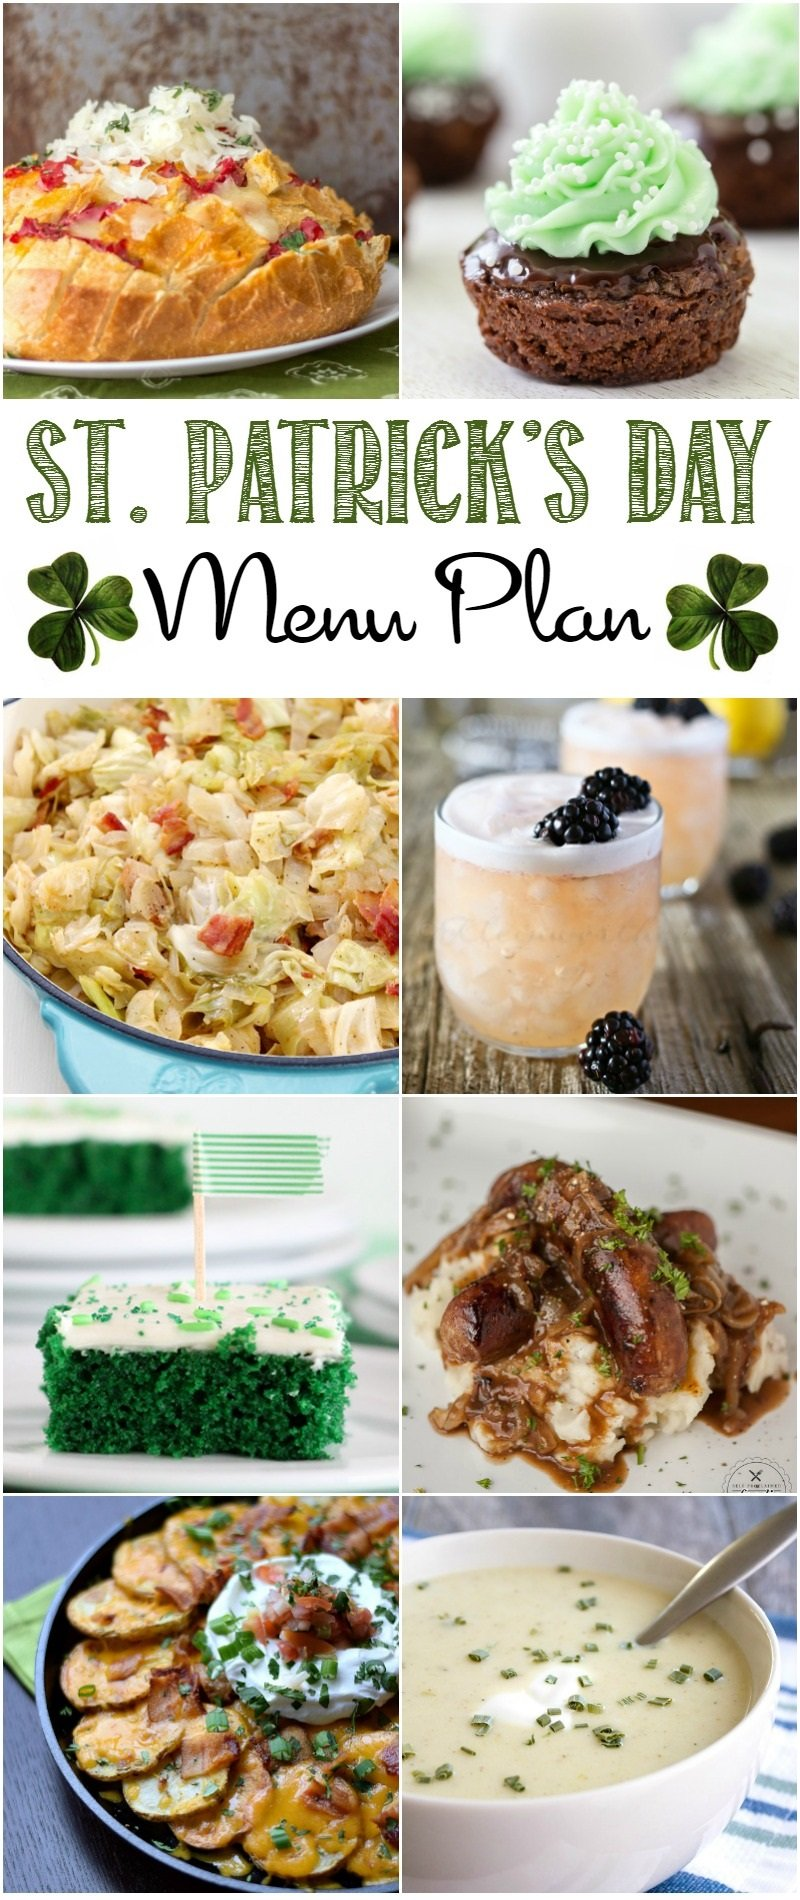 Create a fun meal for family and friends with this St. Patrick's Day menu plan.